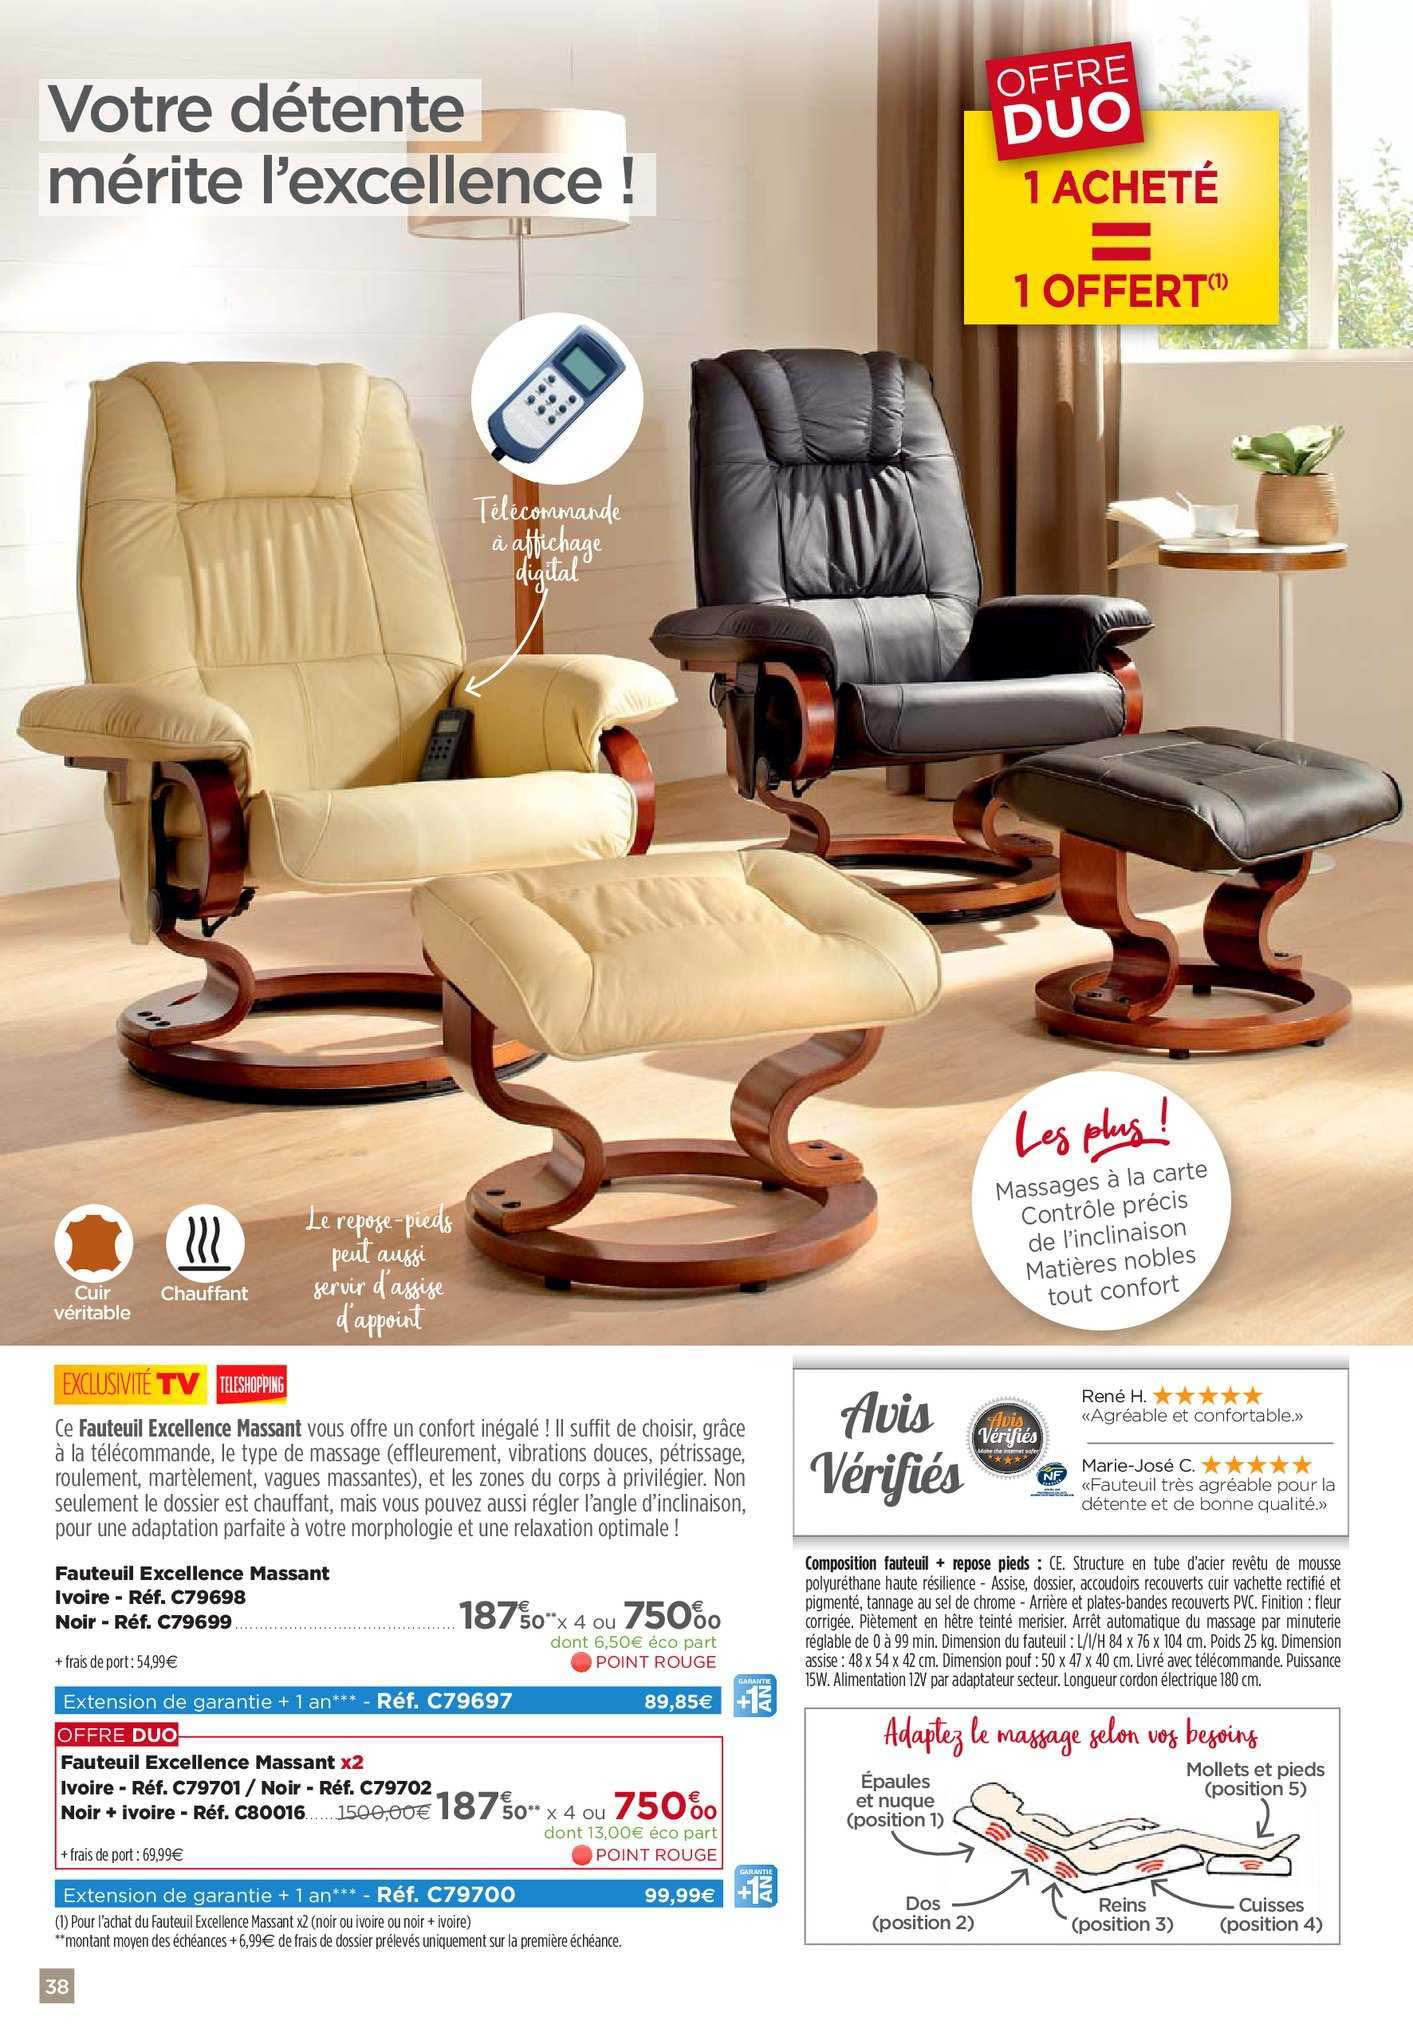 Teleshopping Fauteuil Excellence Massant